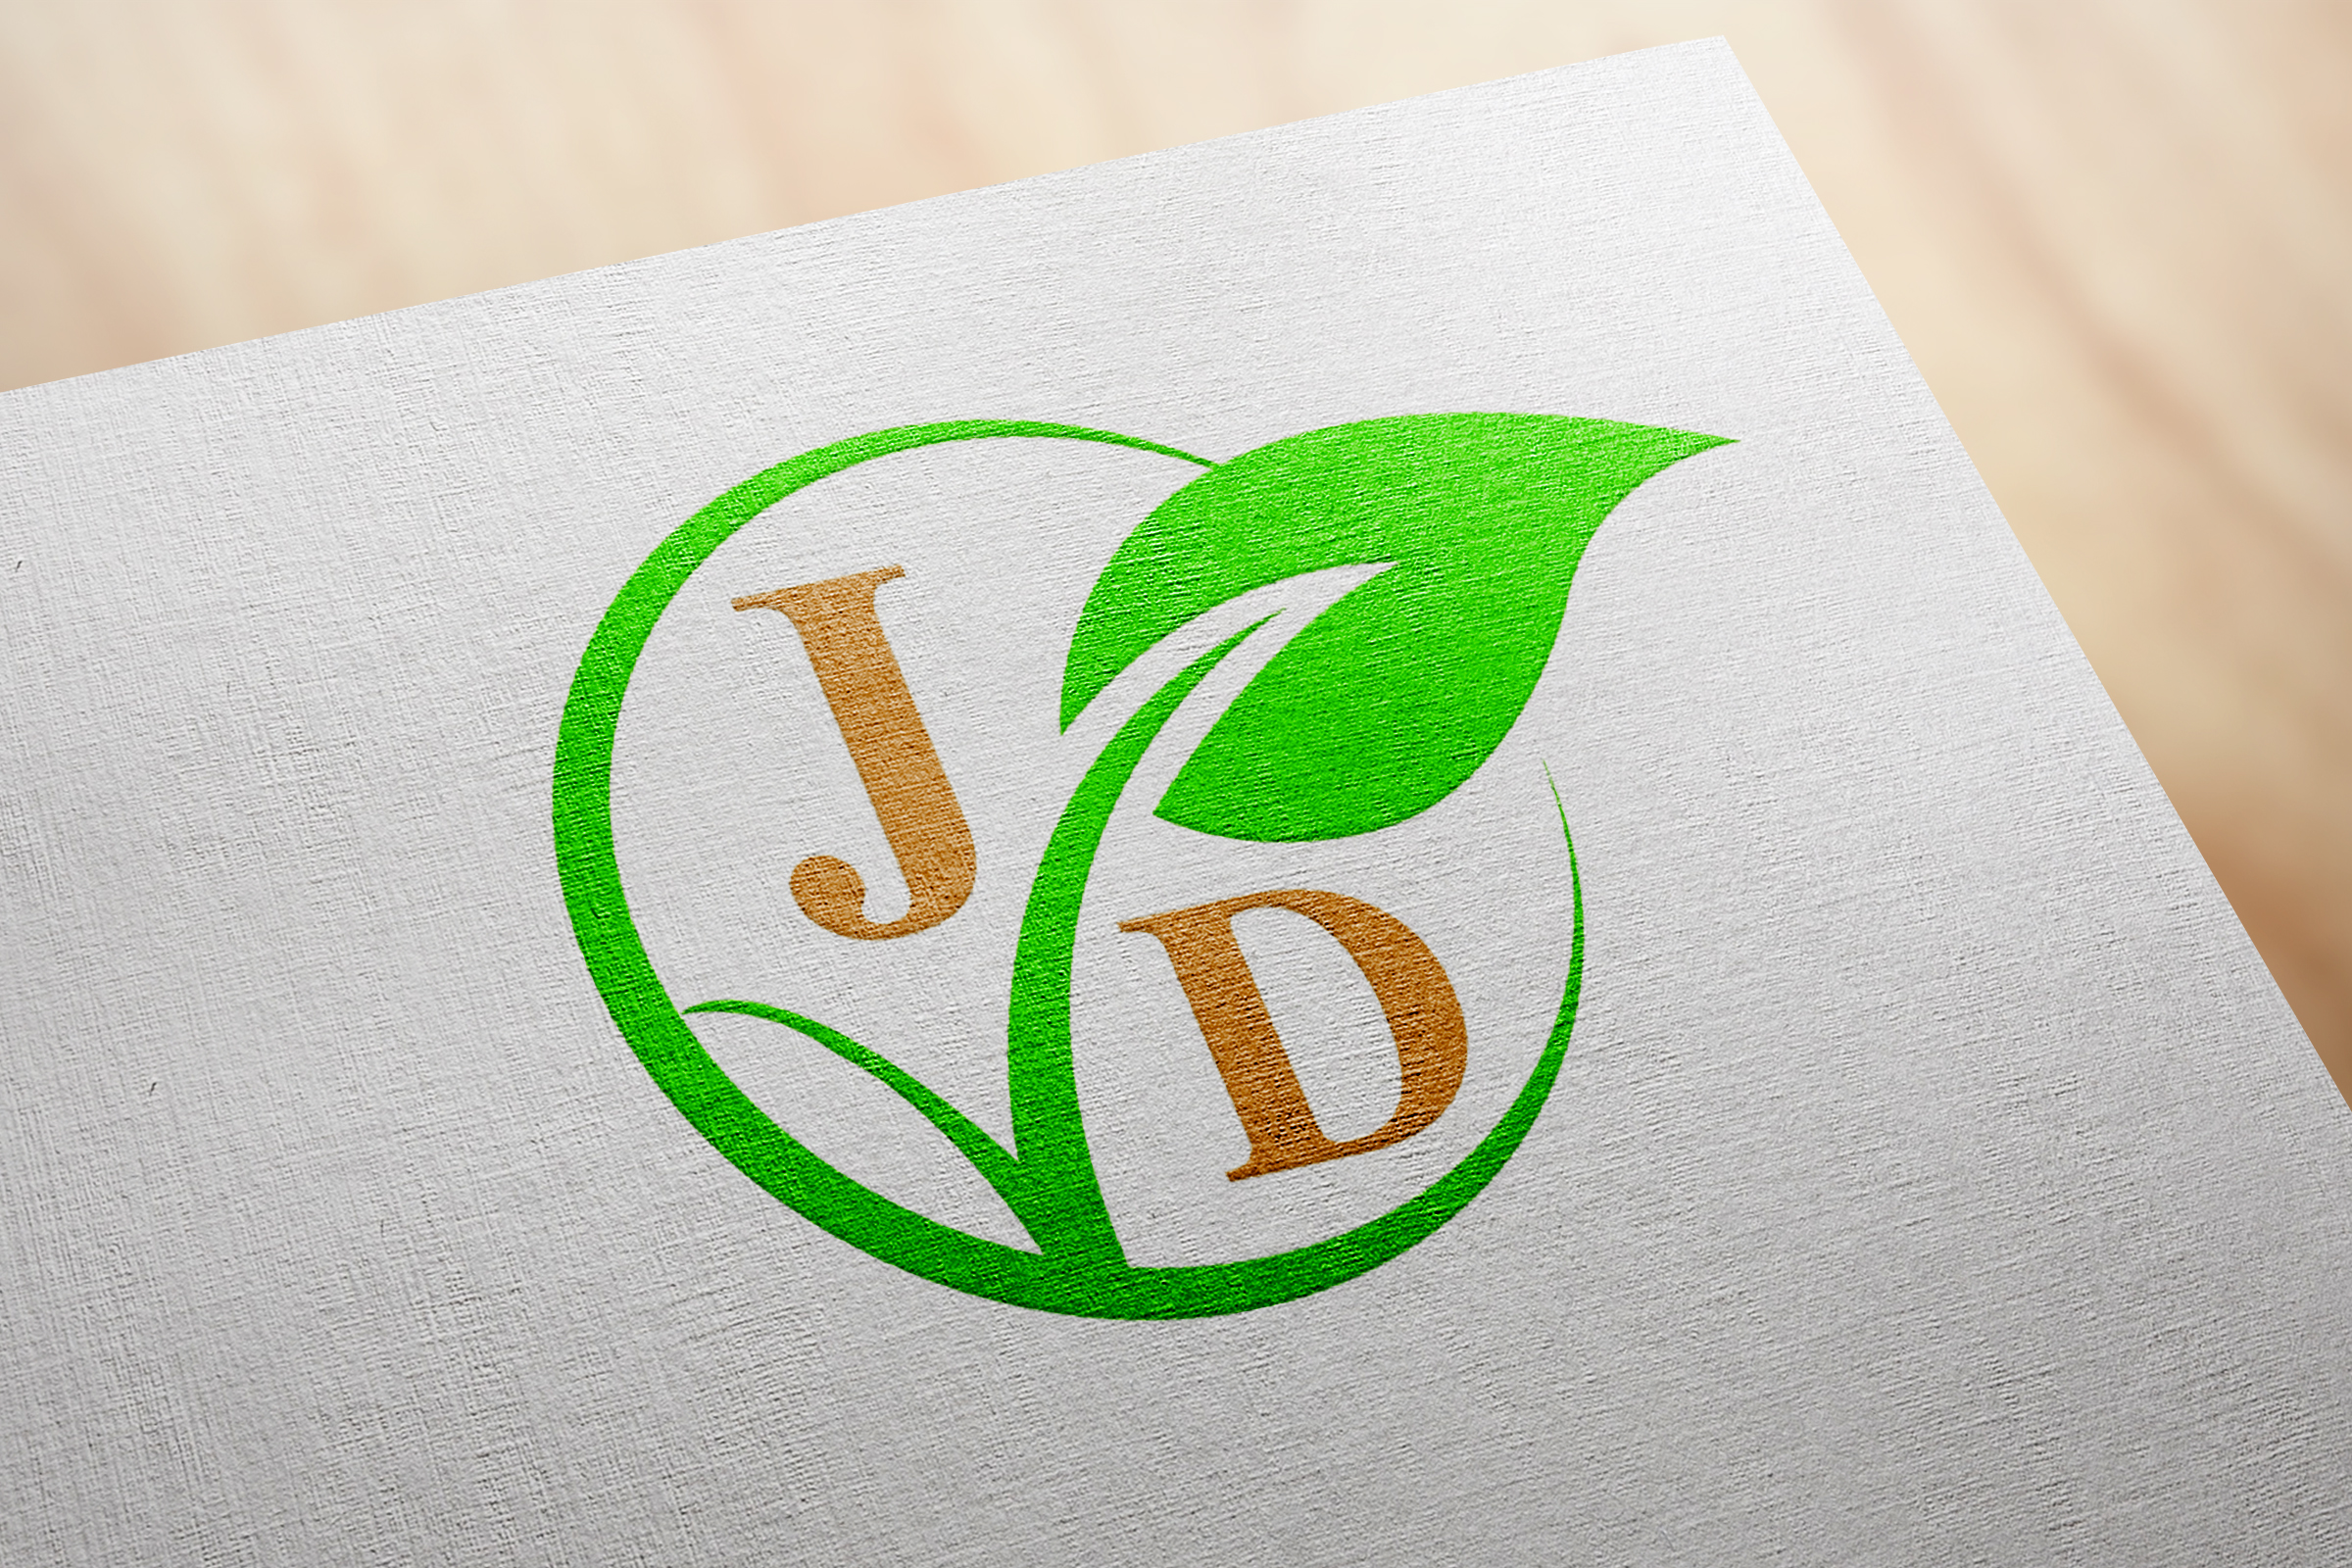 Spices company logo design by Badri design